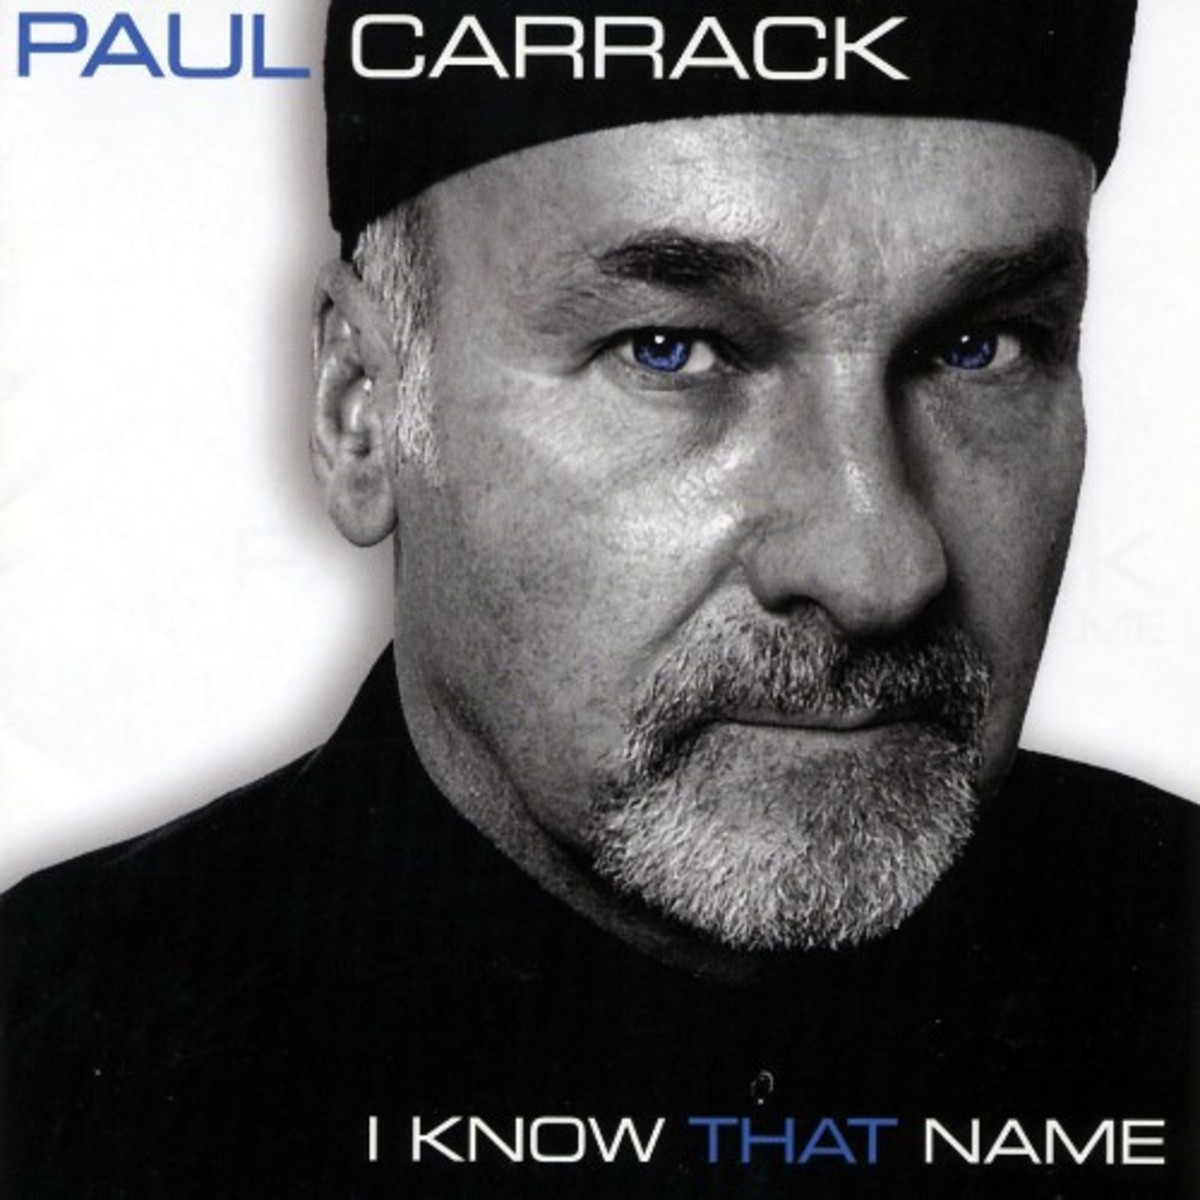 Paul_Carrack